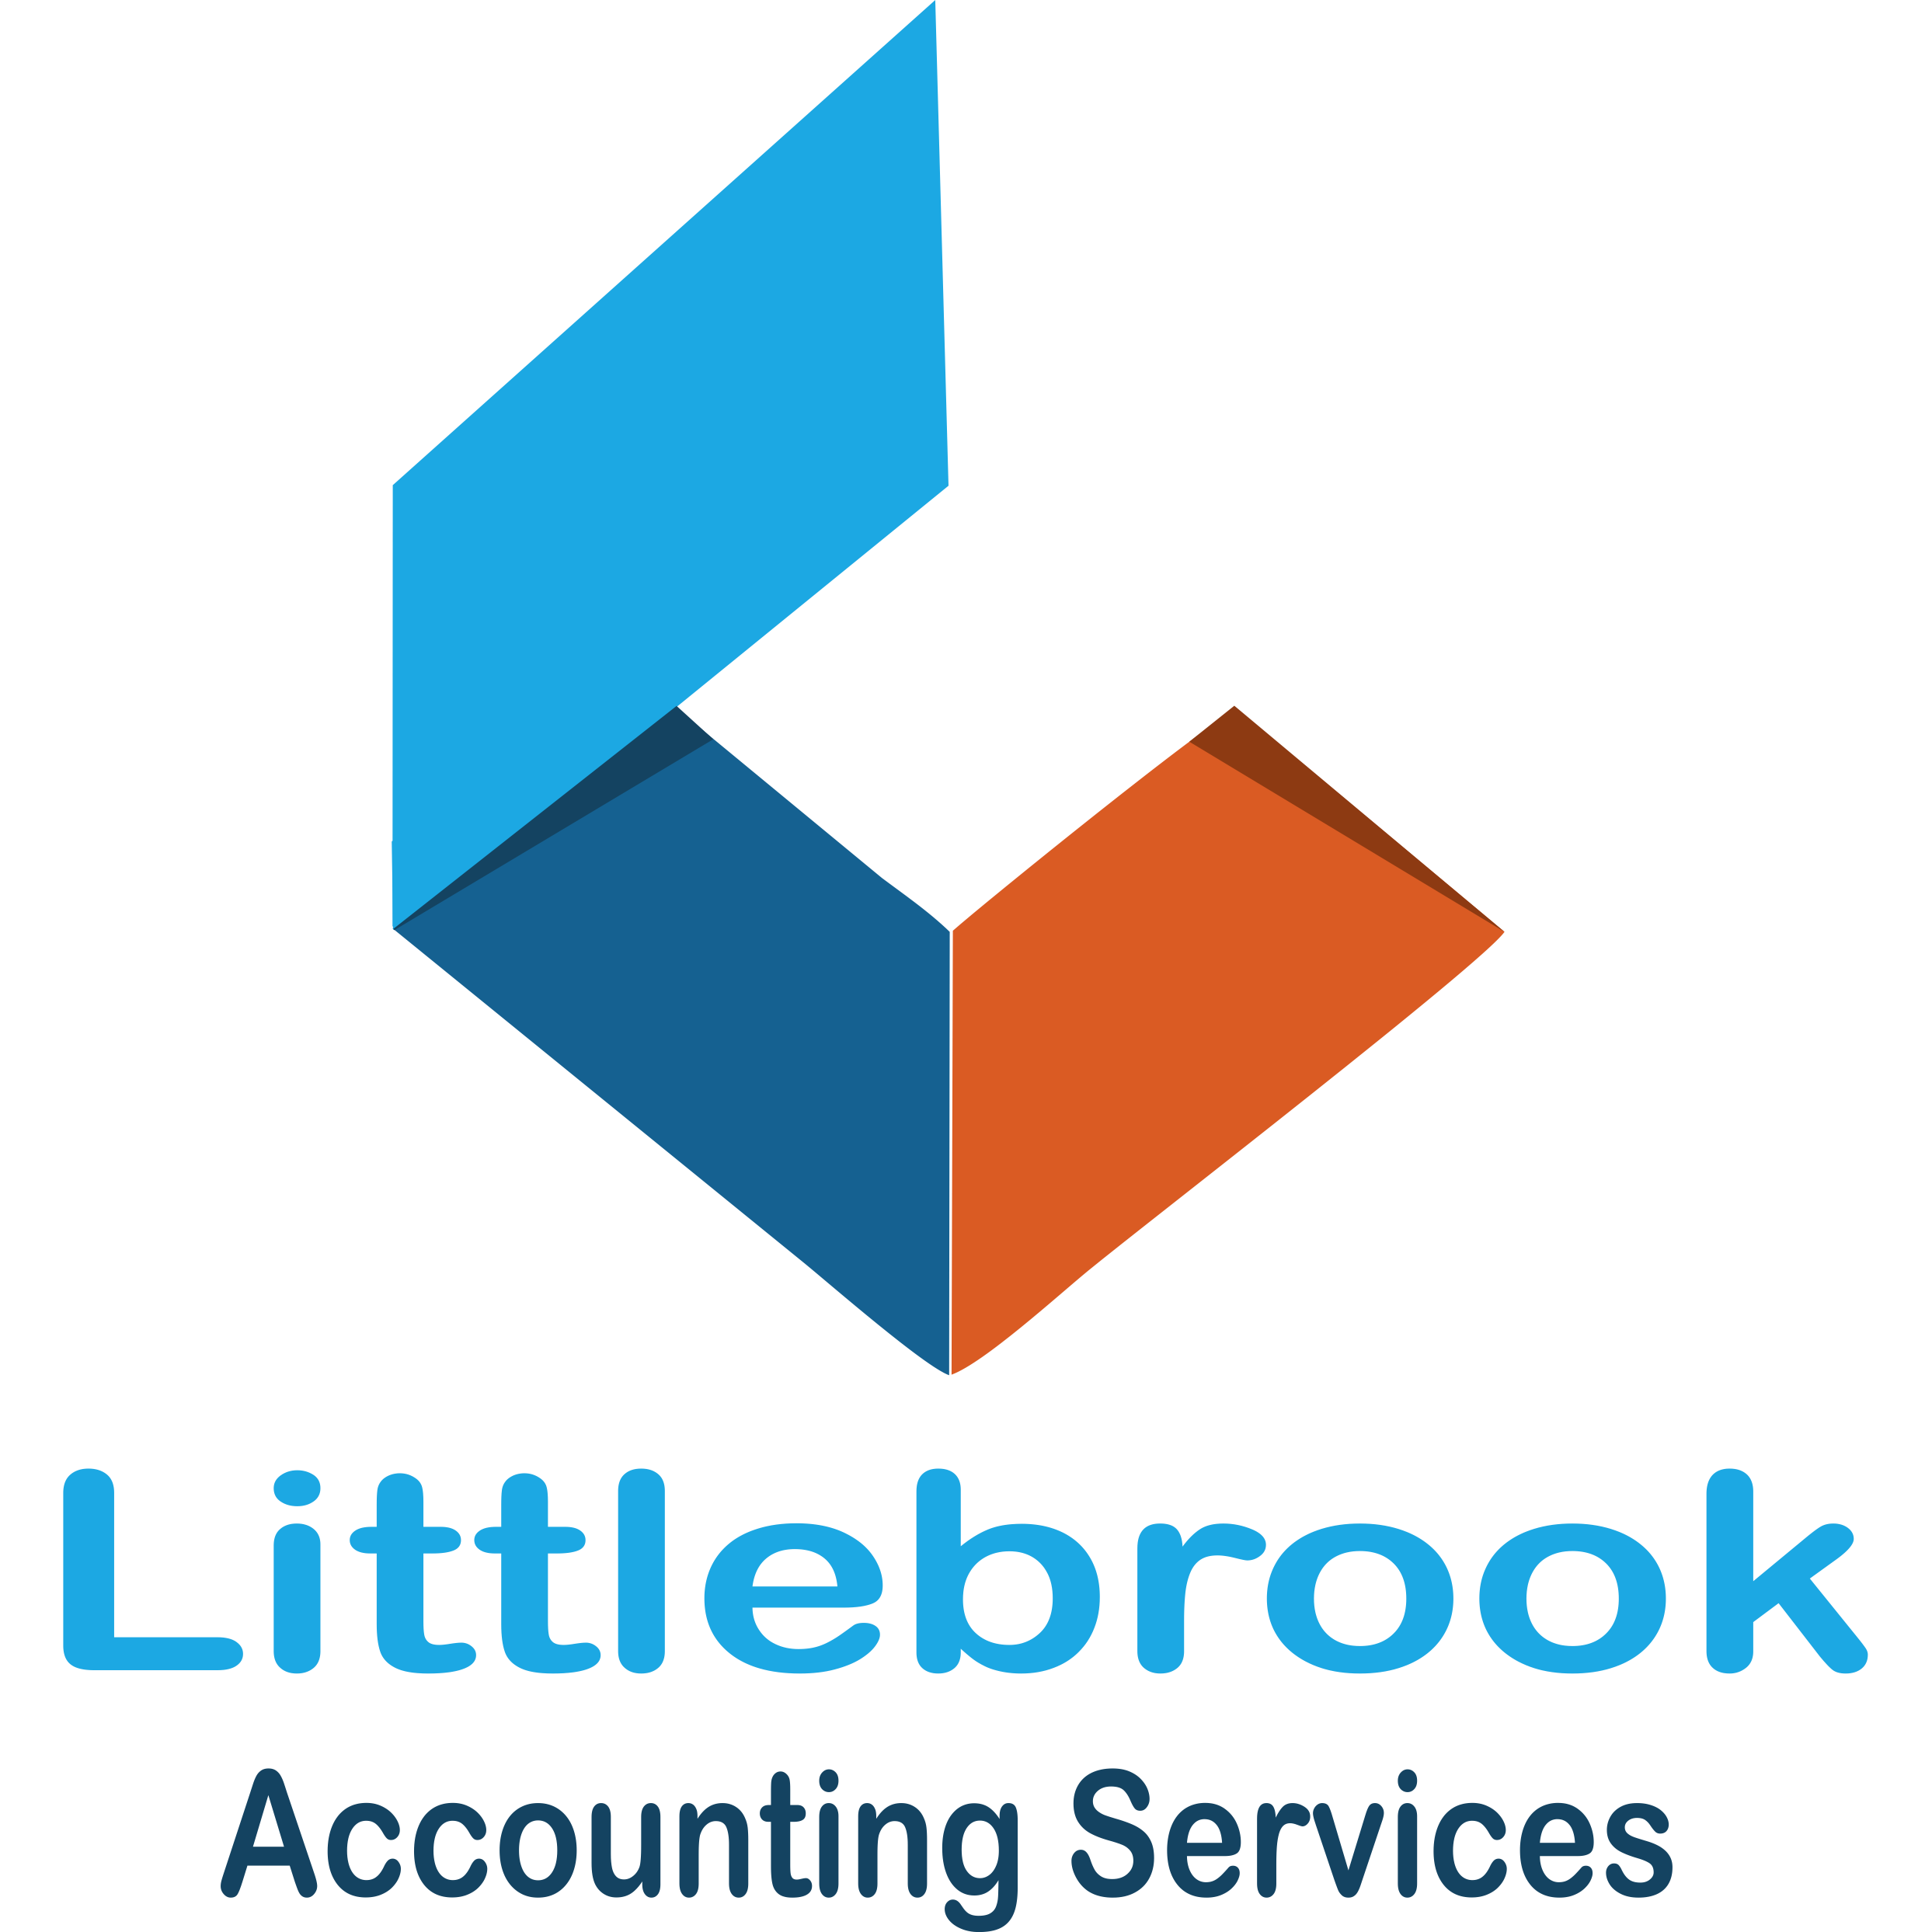 Littlebrook Accounting Services